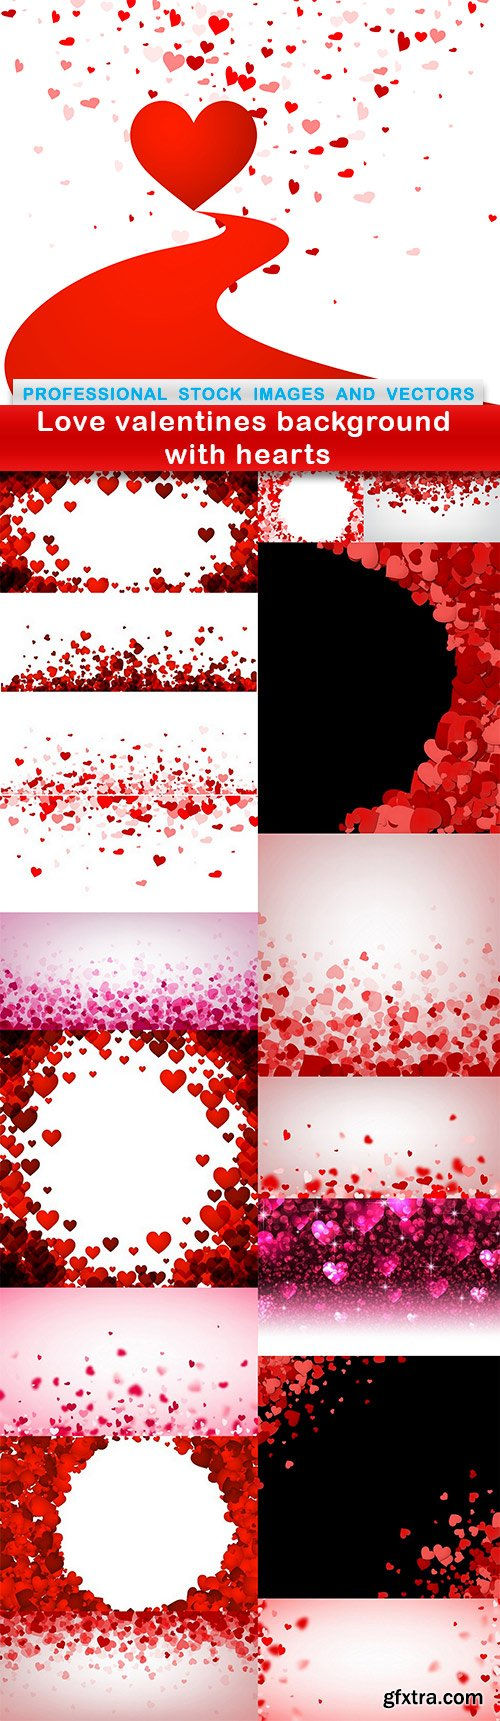 Love valentines background with hearts - 17 EPS